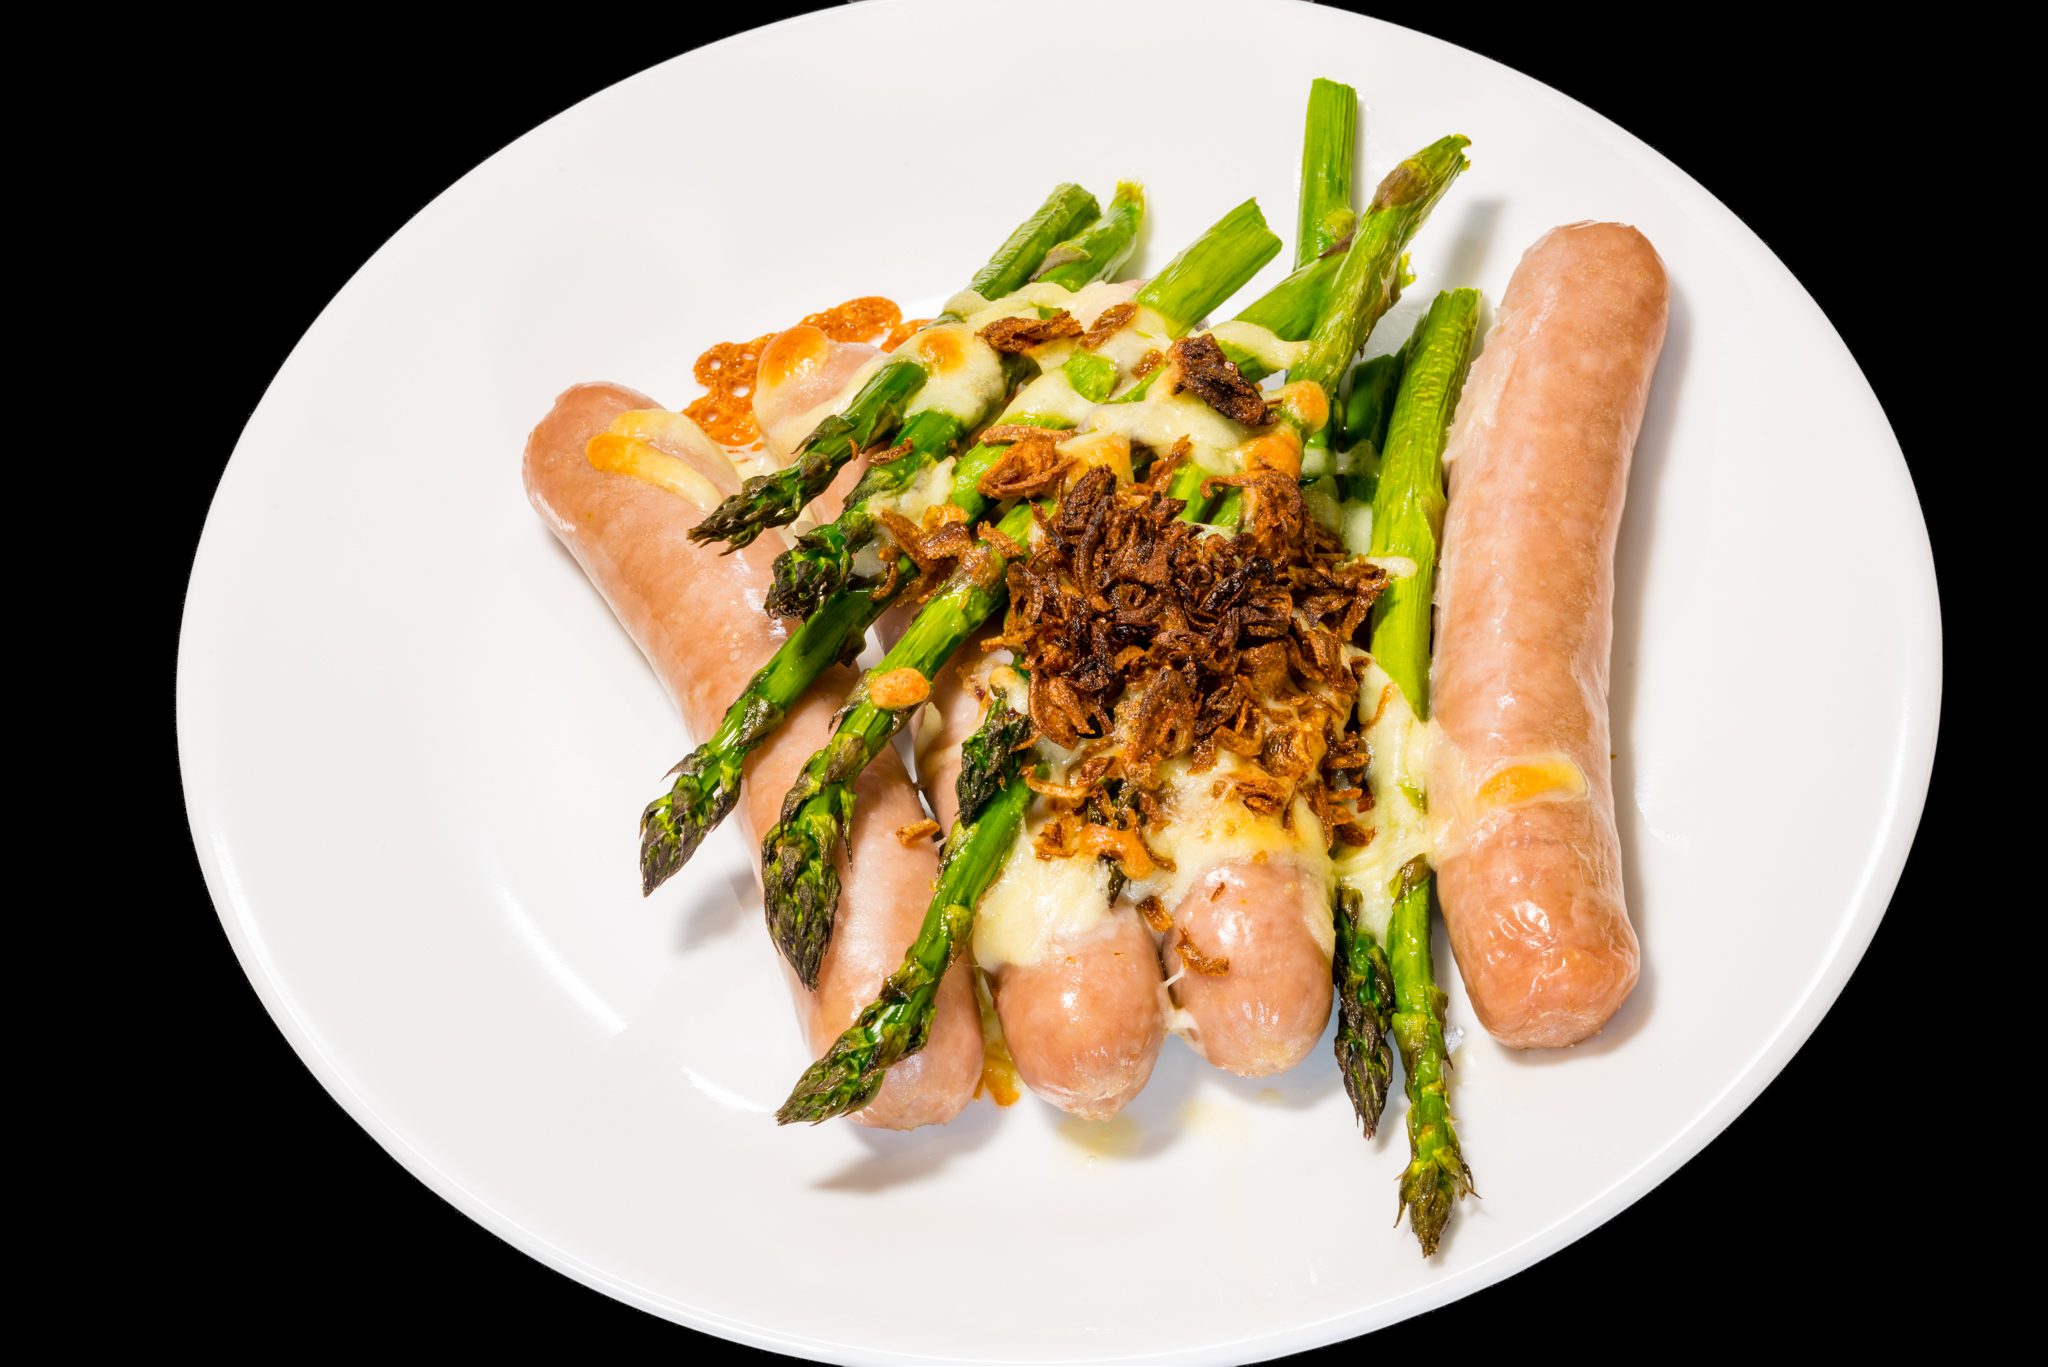 Pork sausages with asparagus and cheesy fried shallots Australian Asparagus Gary Lum